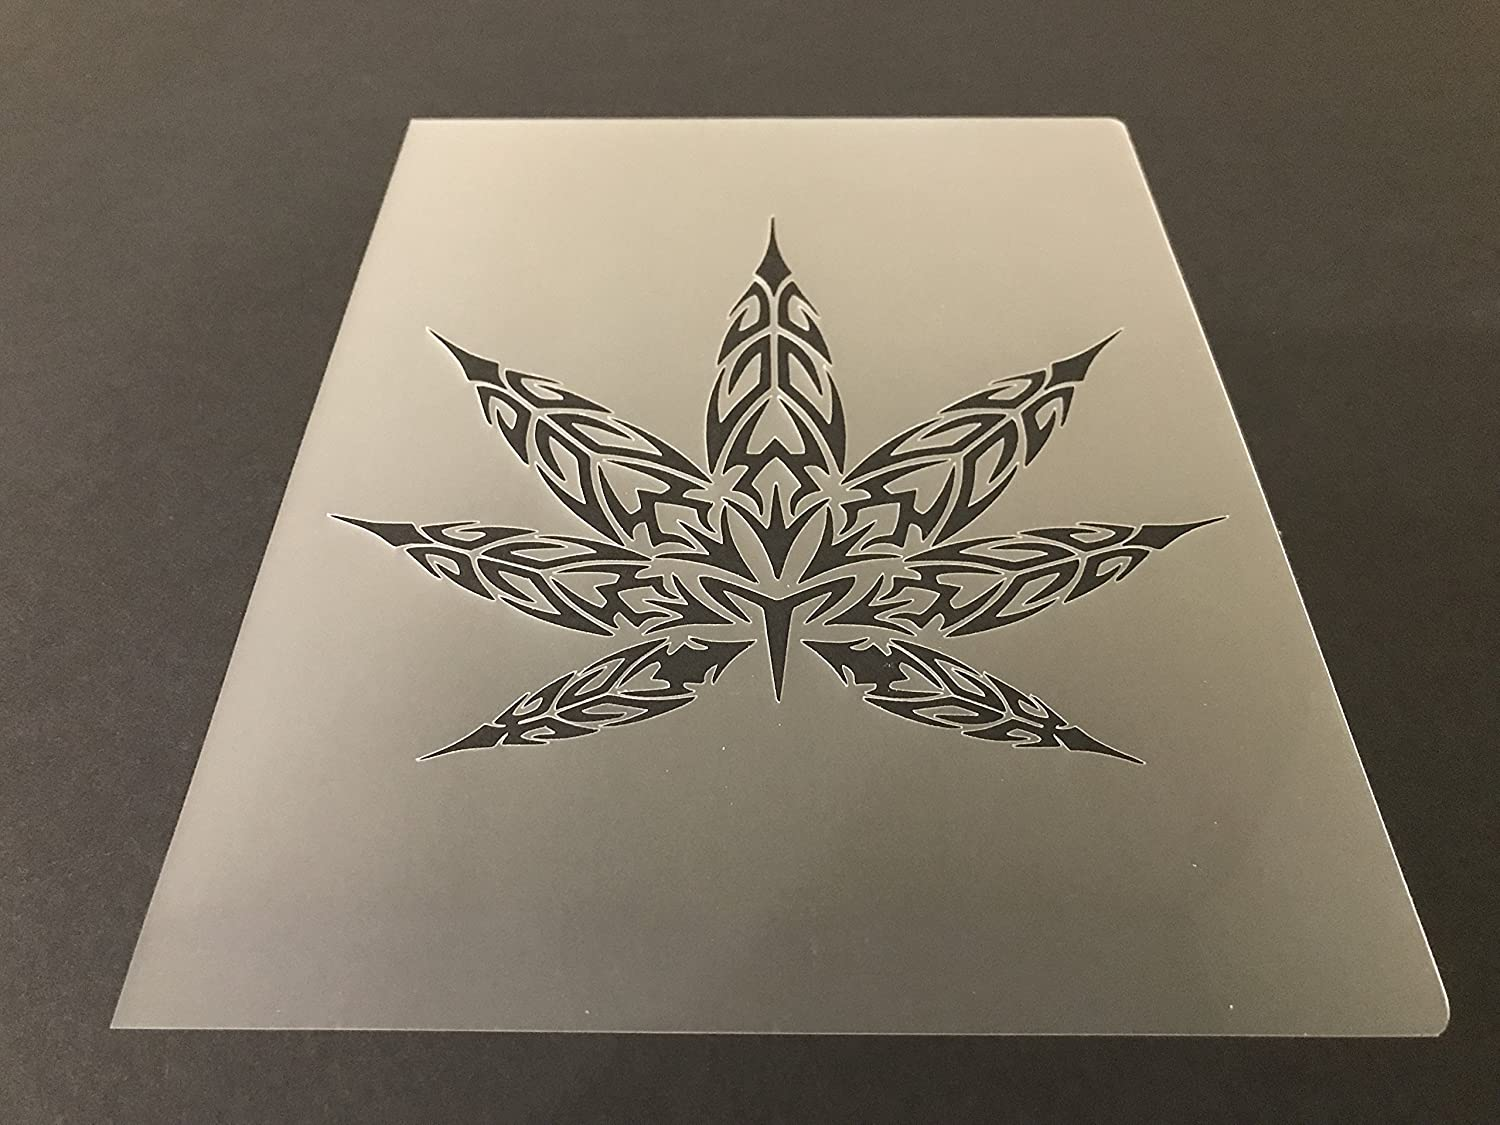 Pot leaf Marijuana Weed Cannabis Stencil #2 Reusable 10 mil Thick 7in x 9in sheet